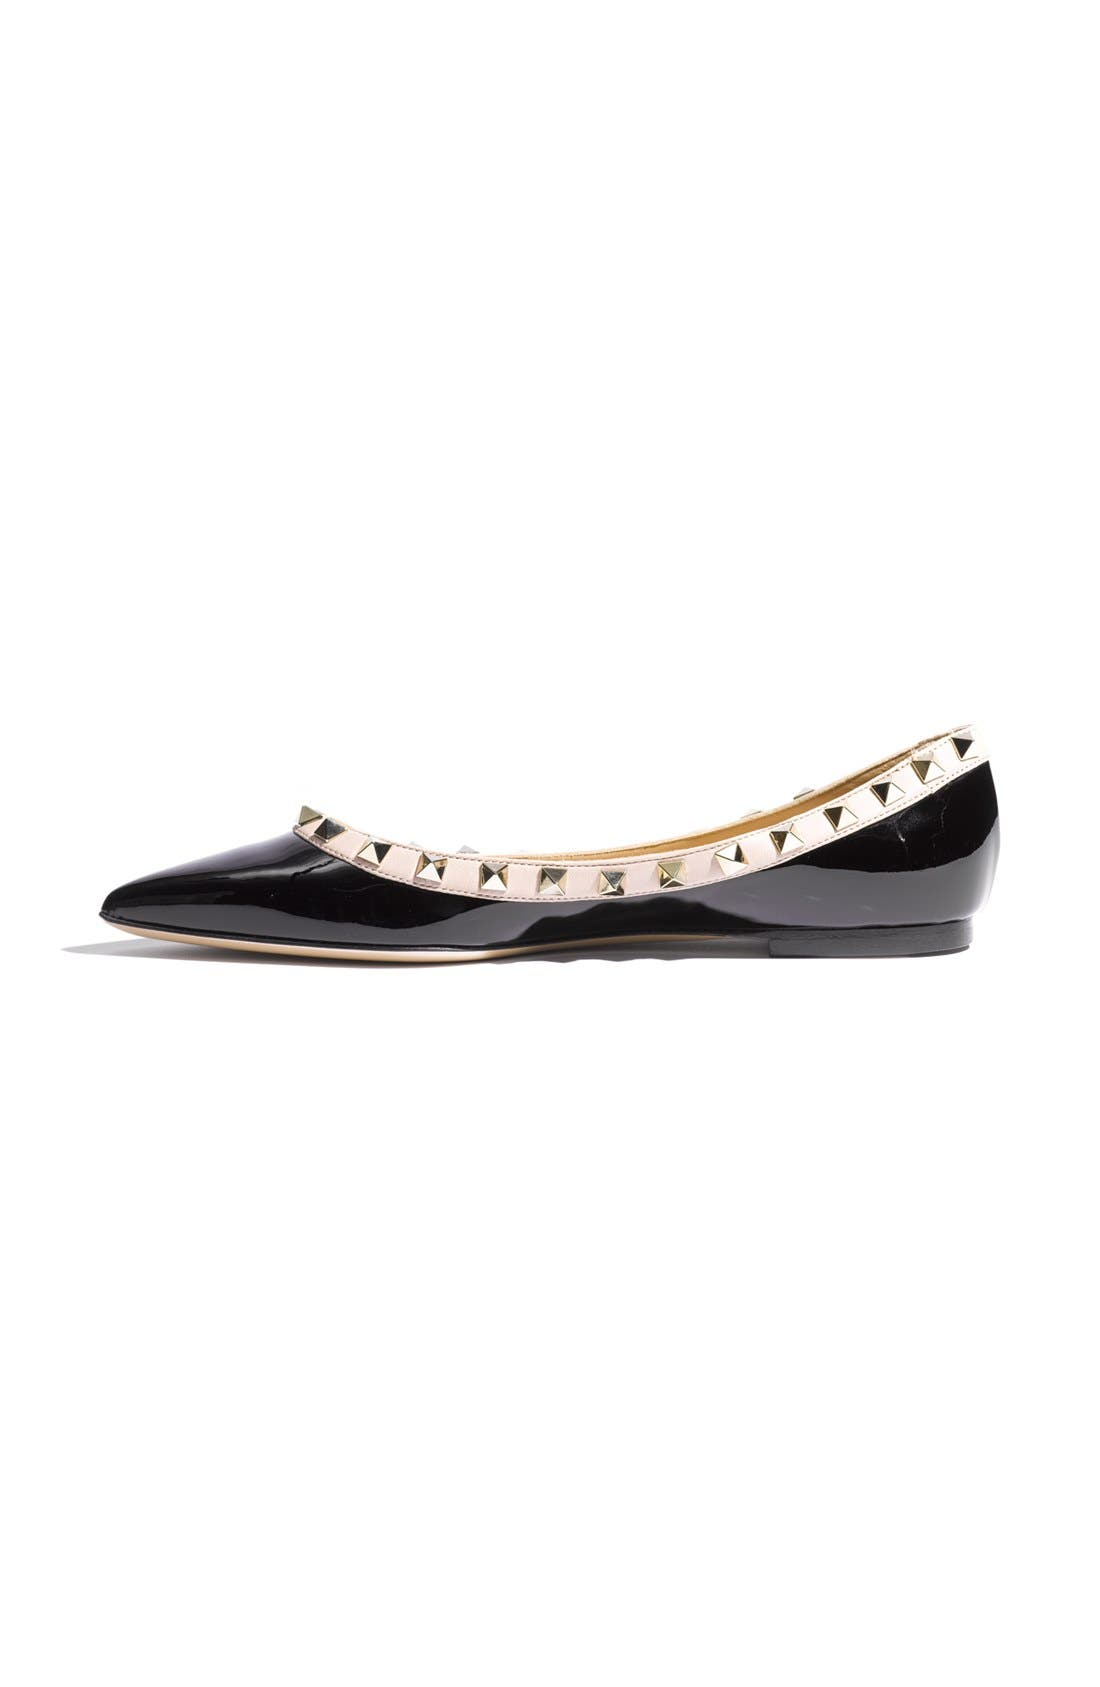 Rockstud Ballerina Flat,                             Alternate thumbnail 3, color,                             Black/ Blush